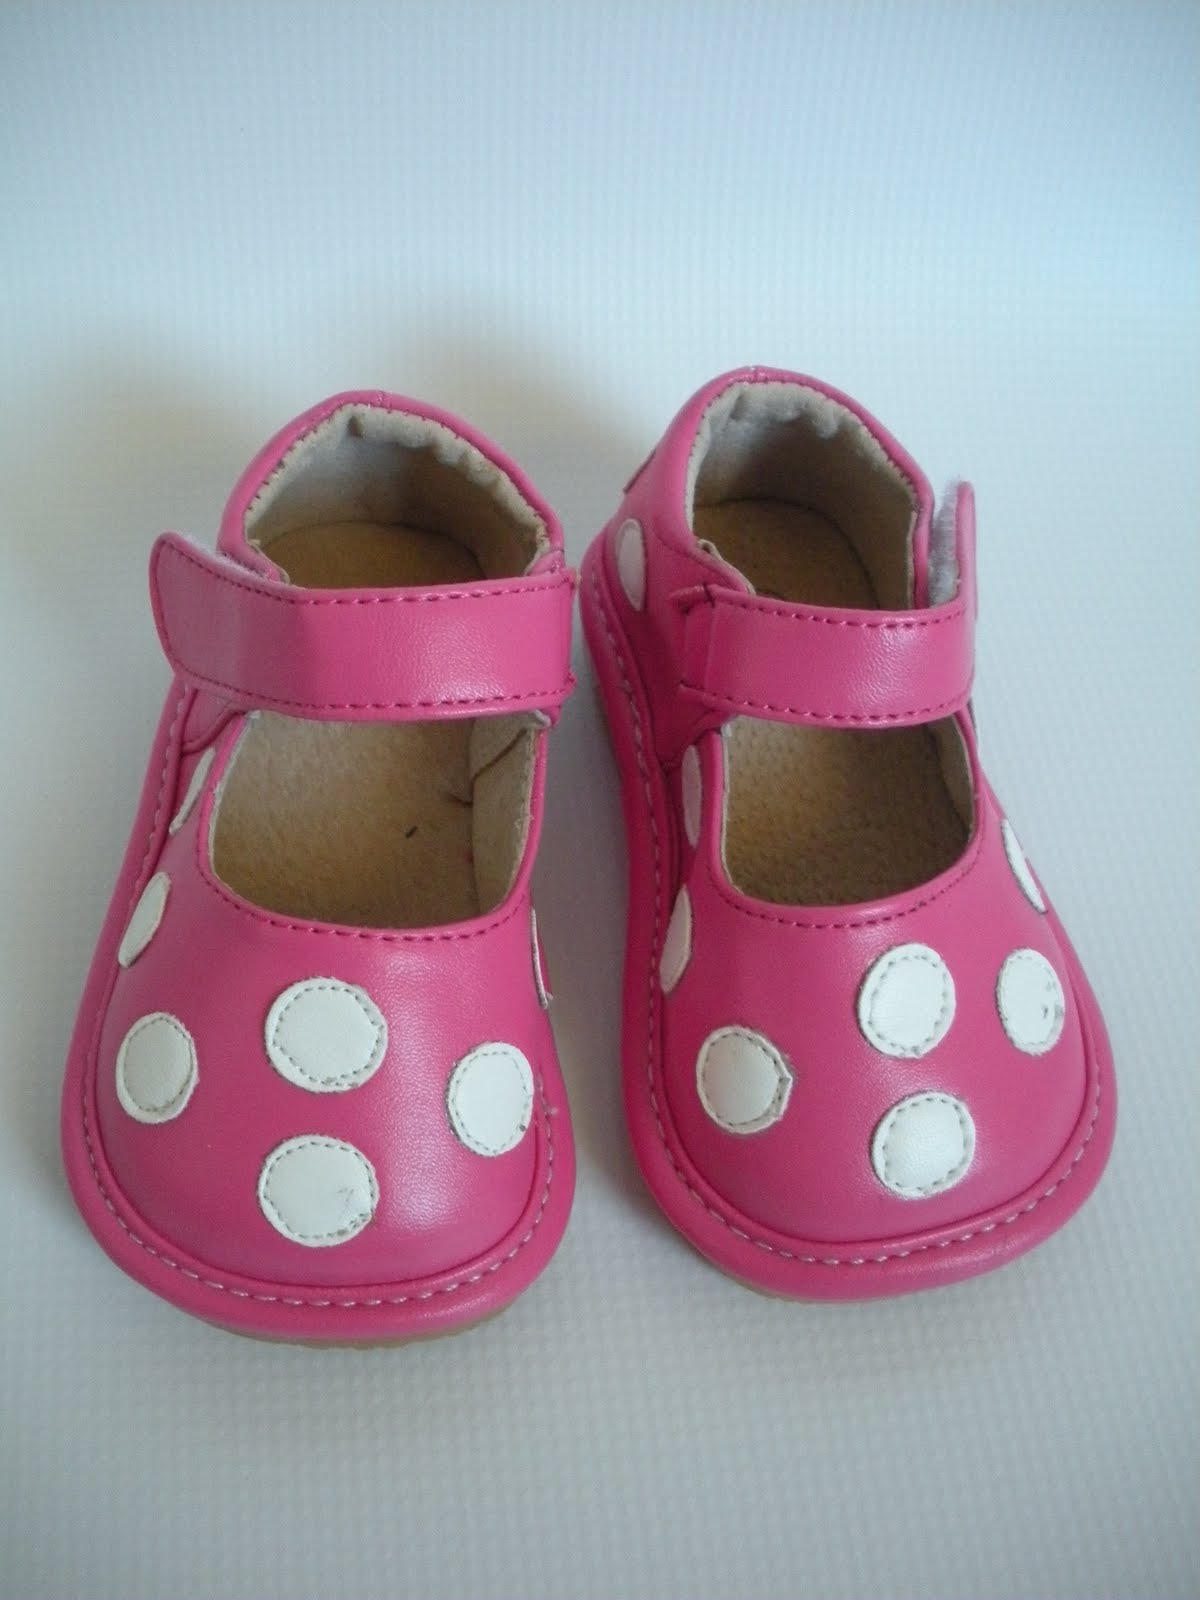 Squeaky Shoes for Tiny Tots Girls Closed Toe Shoes